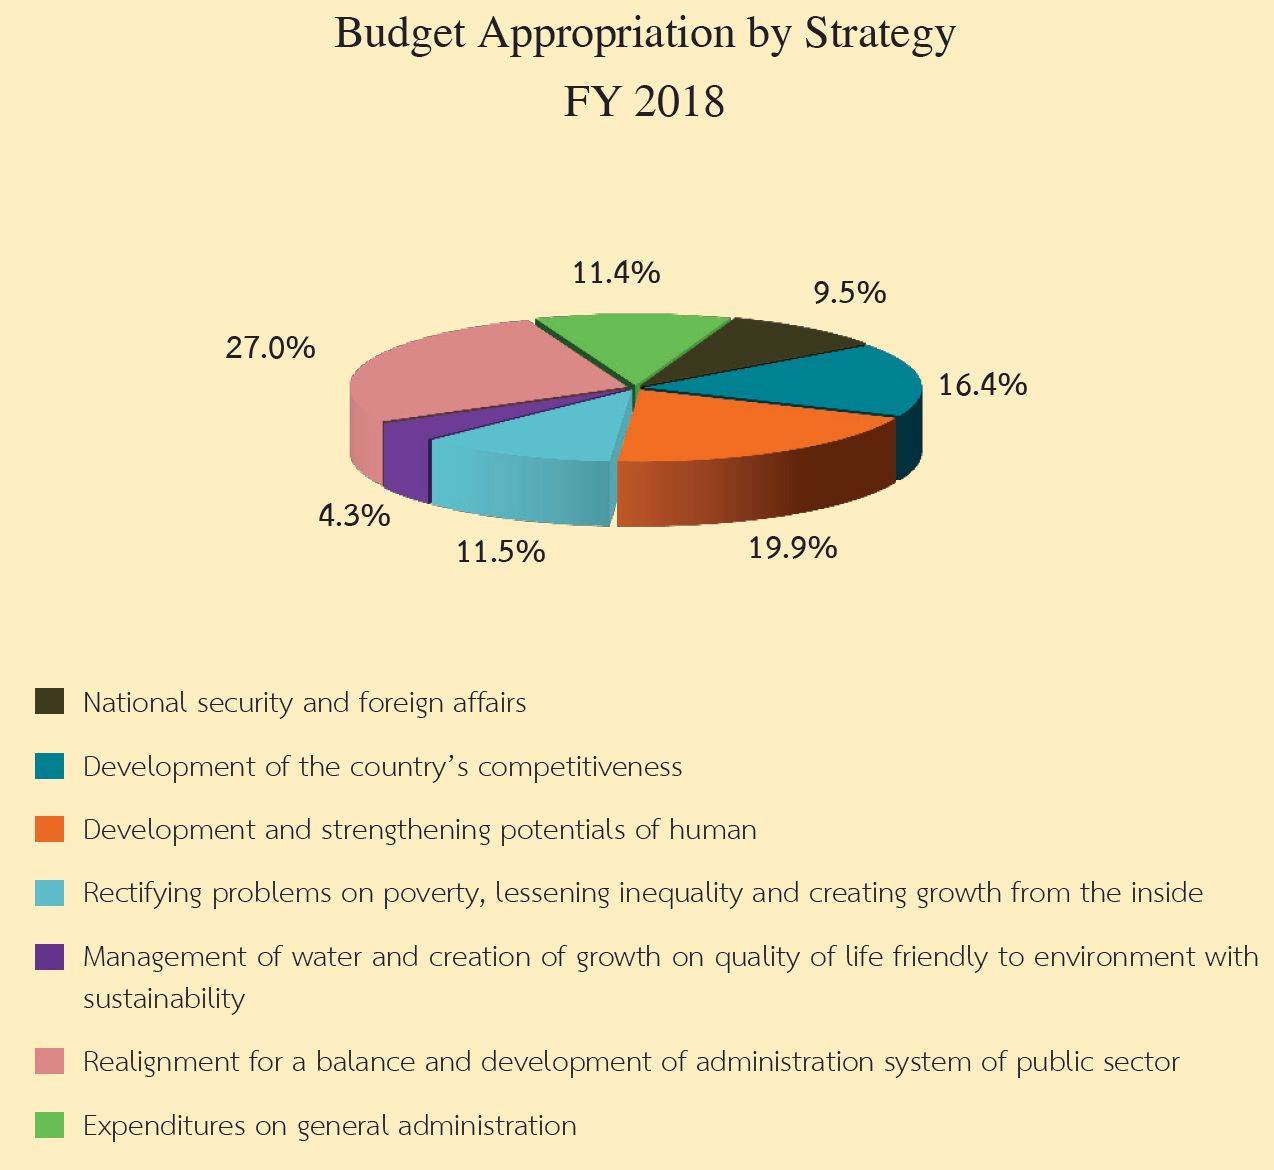 B2 9-trillion budget approved for fiscal 2018